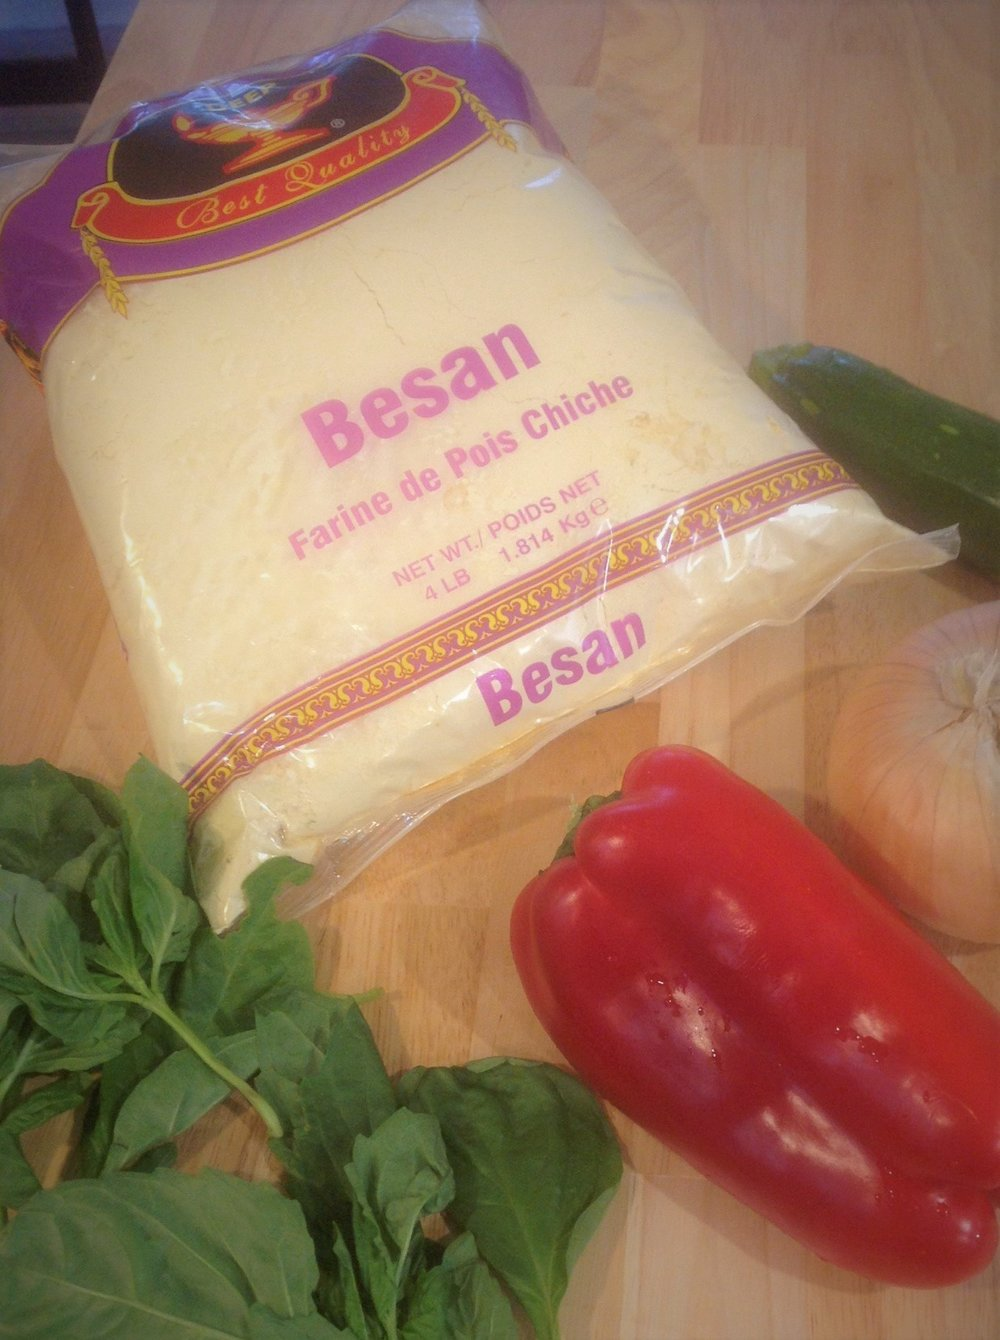 Basan flour (aka chickpea or garbanzo bean) flour can be found in Indian markets.  This gluten-free flour is full of healthy, plant-based vegan protein and fiber